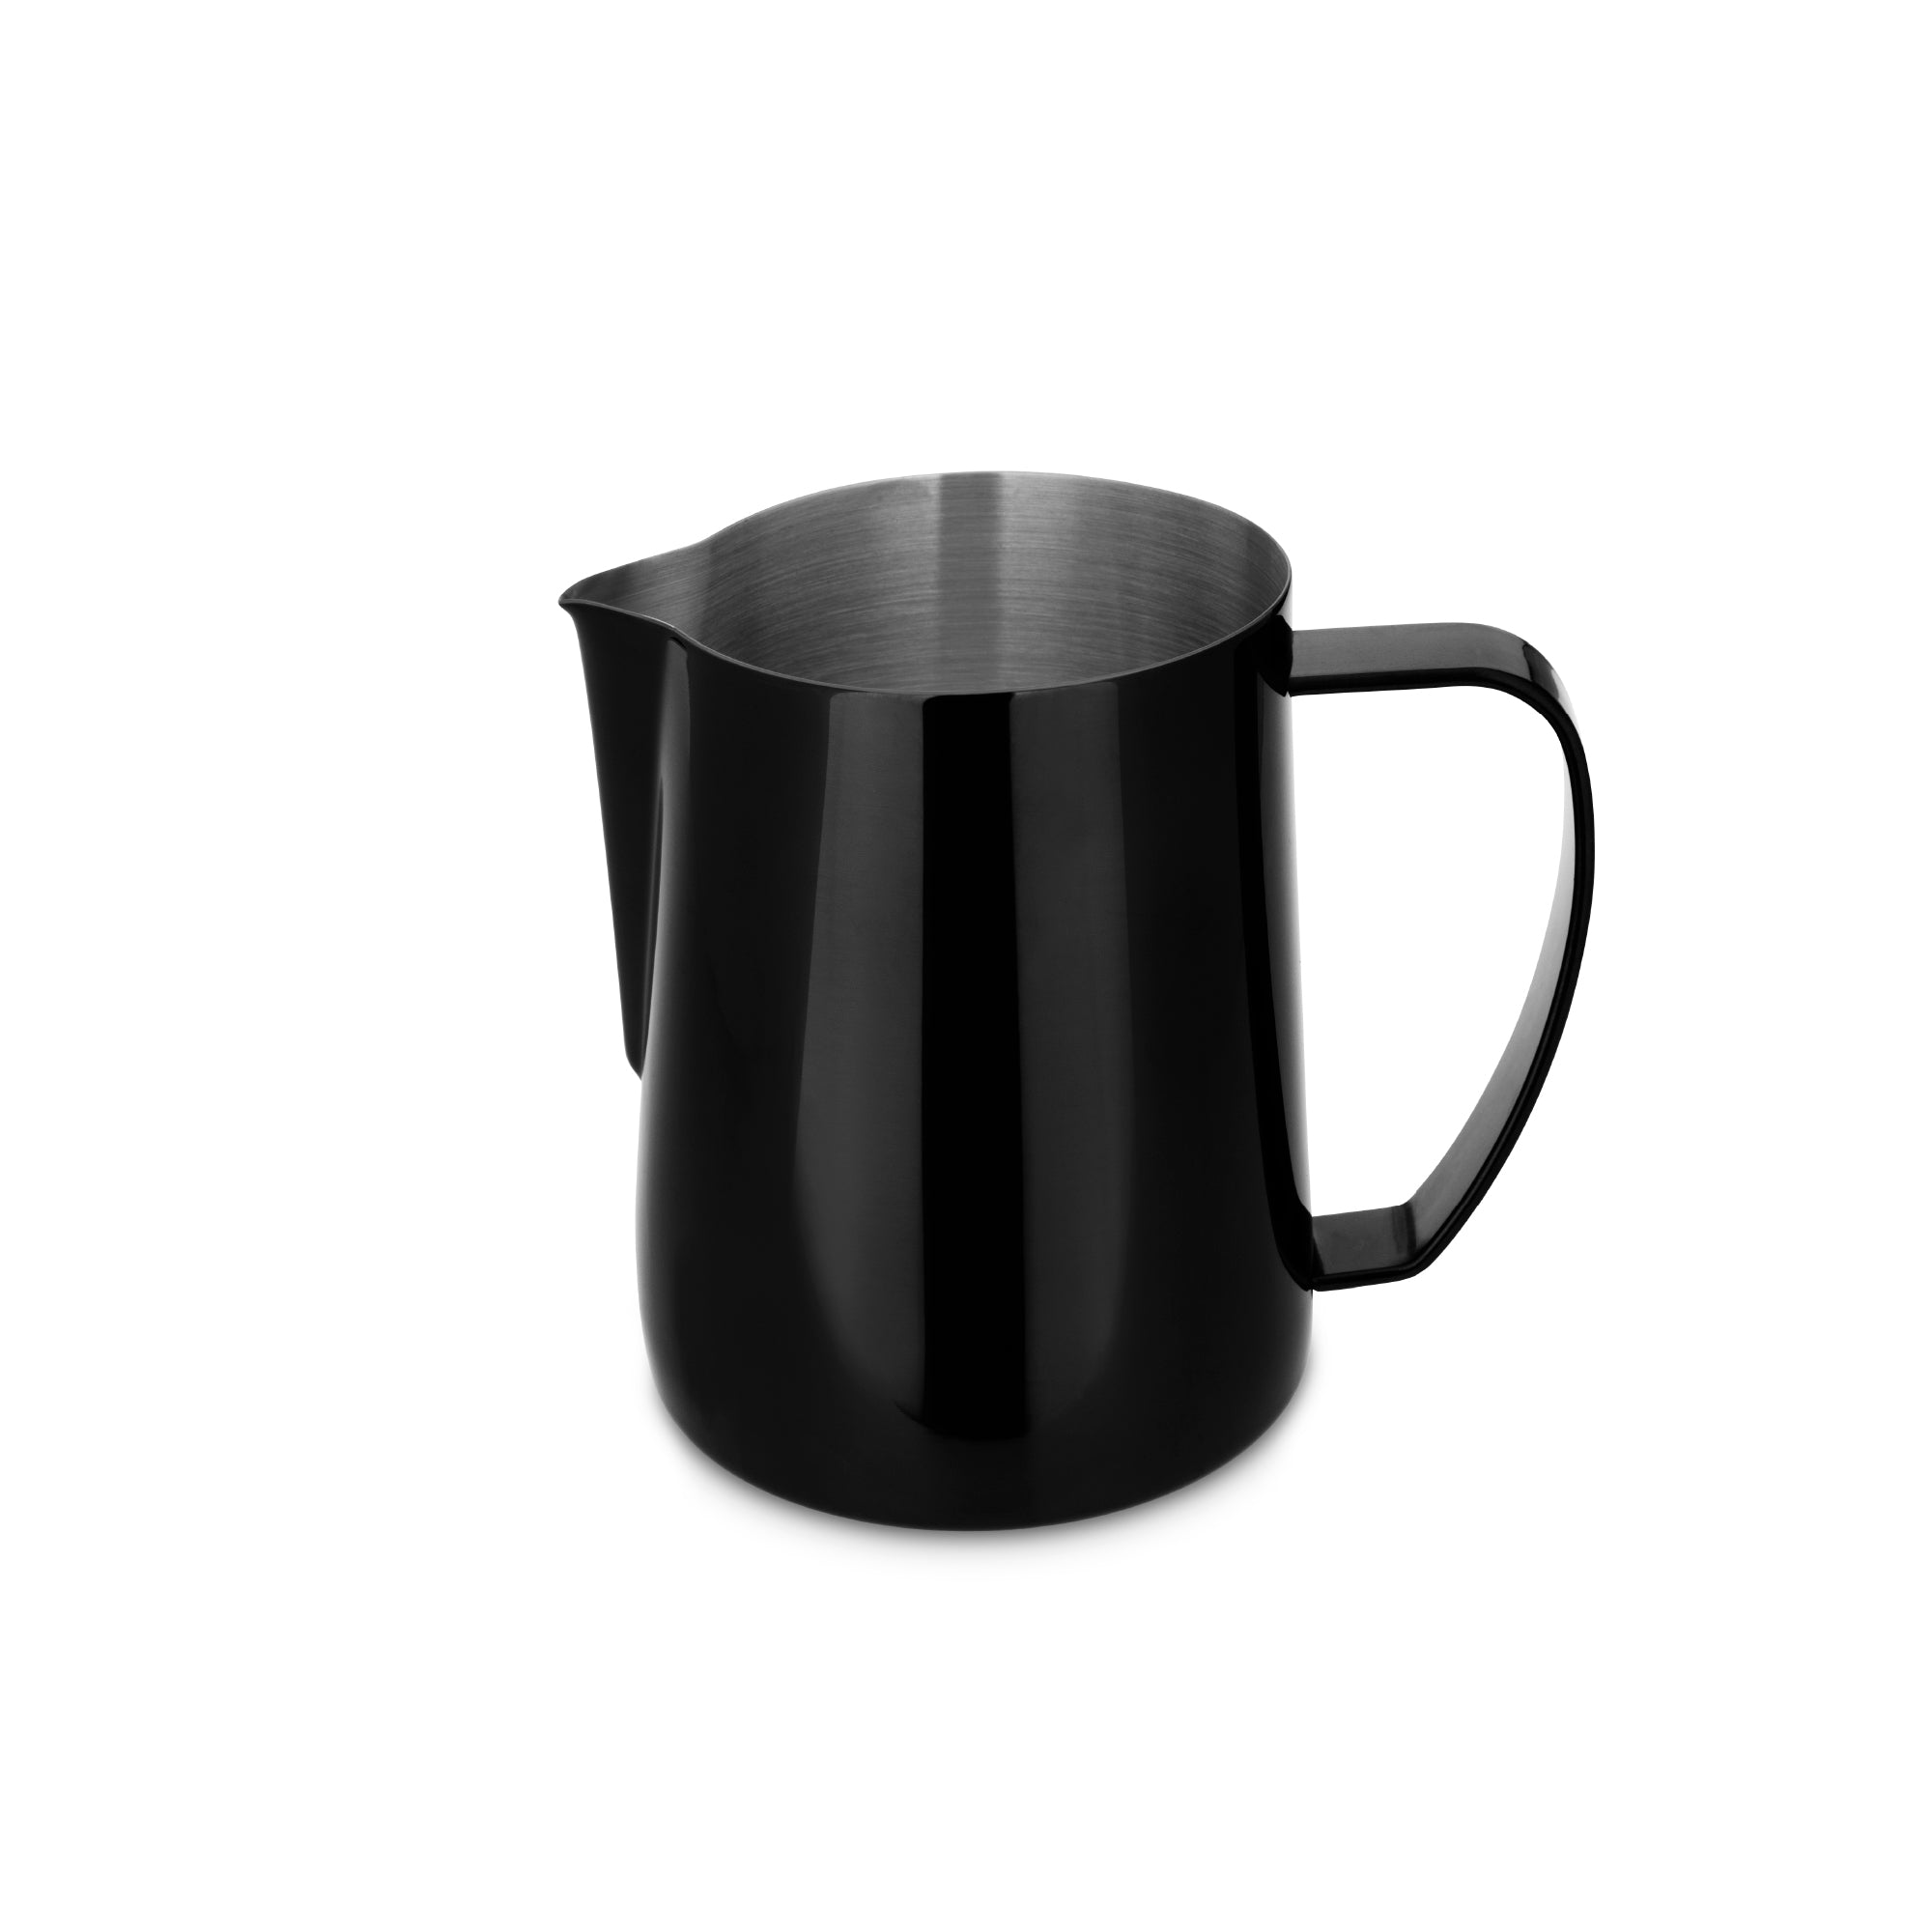 EspressoWorks Stainless Steel Milk Frothing Jug - Black (600ml)